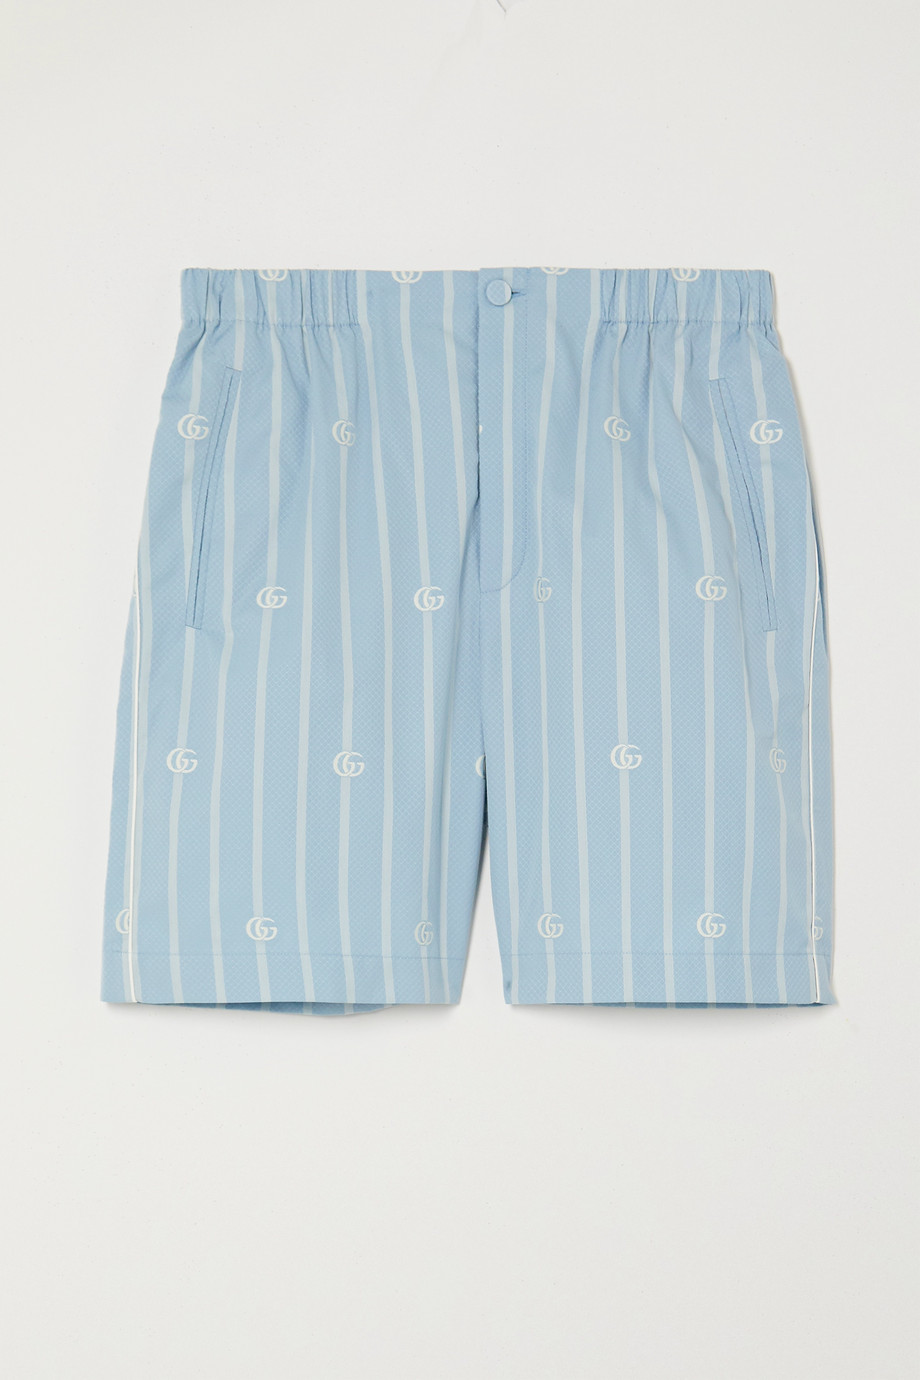 GUCCI Striped cotton-jacquard shorts